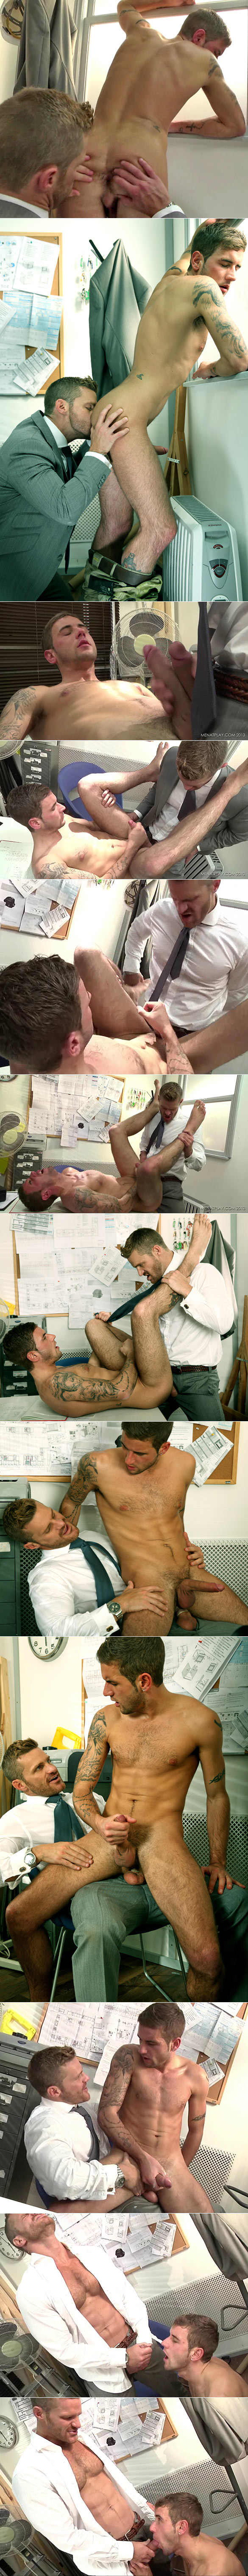 "MenAtPlay: Landon Conrad fucks Dan Broughton in ""On Site"""